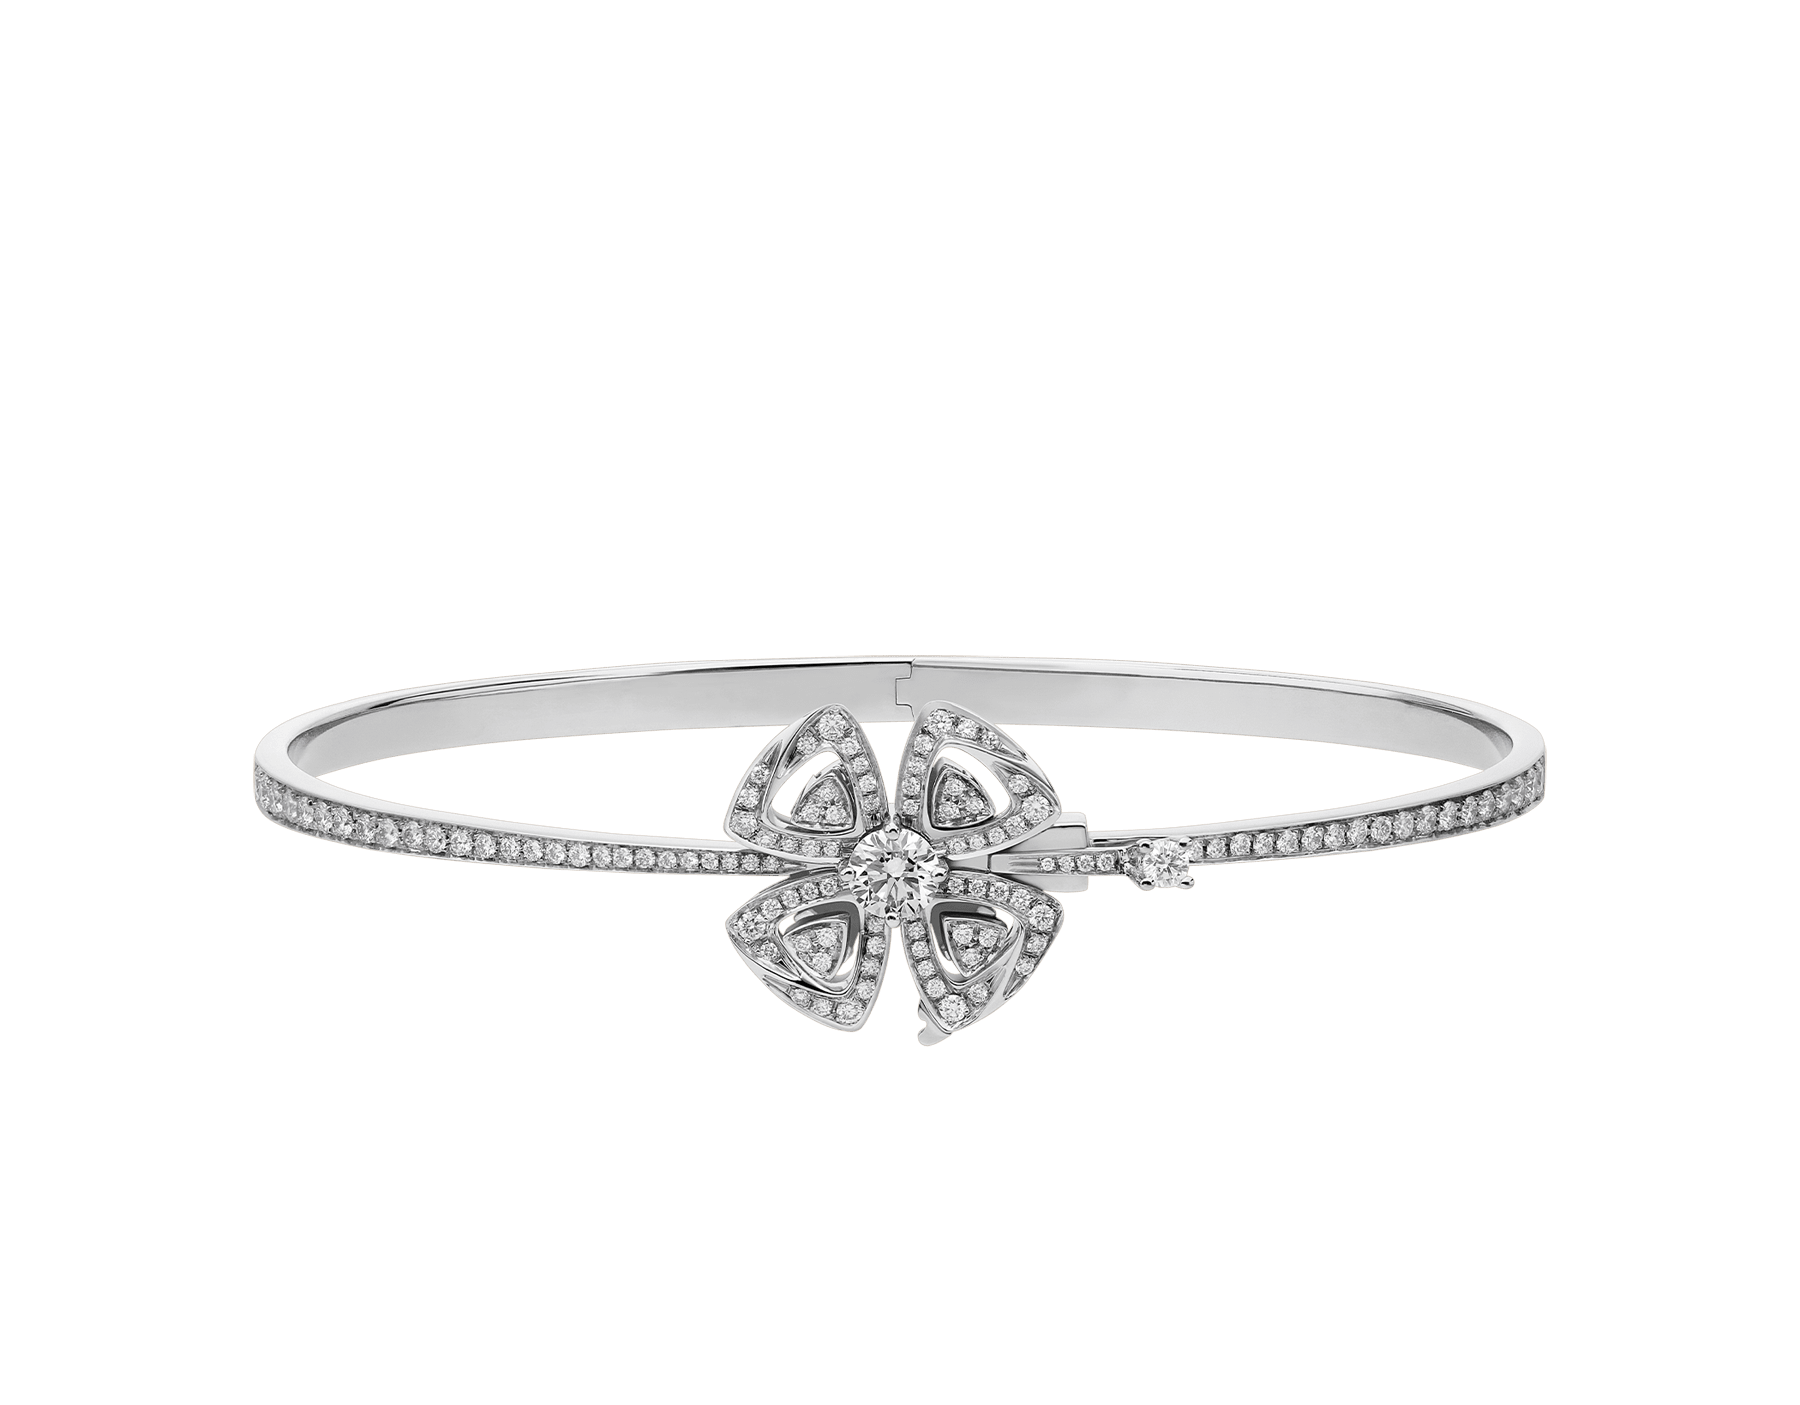 Fiorever 18 kt white gold bracelet set with a central diamond (0.30 ct) and pavé diamonds (0.63 ct) BR858706 image 2